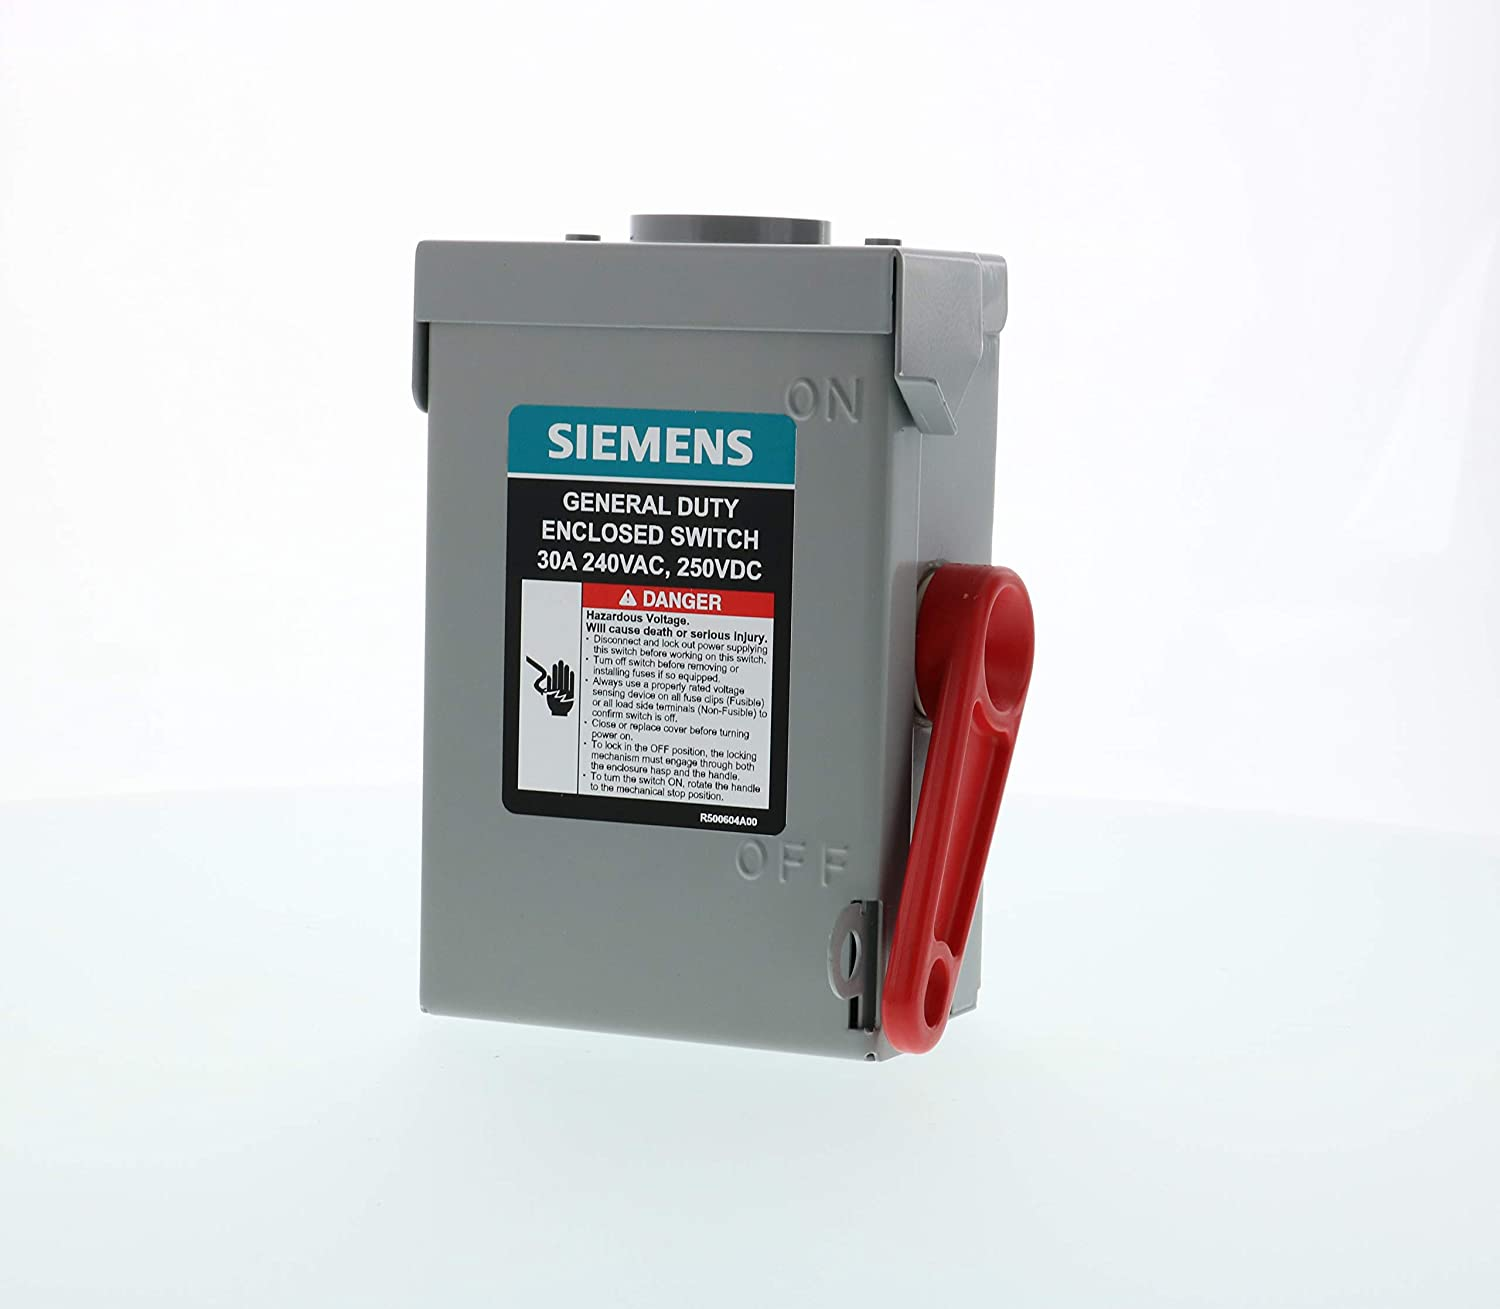 SIEMENS 2P 30A 240V General Duty Safety Switch Outdoor, Non-Fusible - -